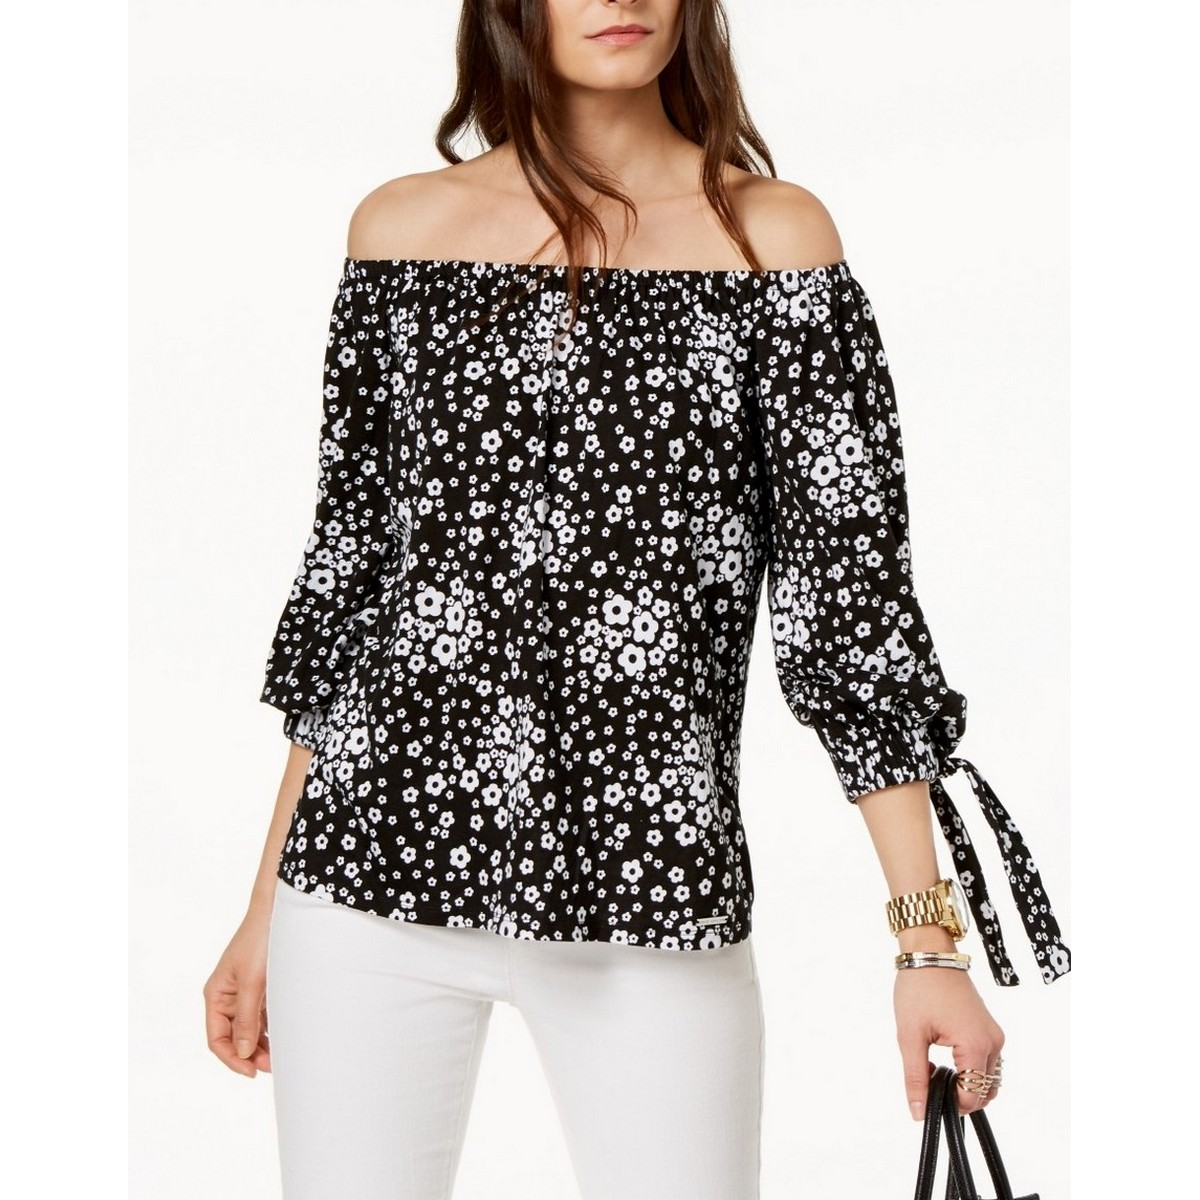 be28eb089ec Details about MICHAEL KORS NEW Women's Black & White Off Shoulder Blouse  Shirt Top P TEDO